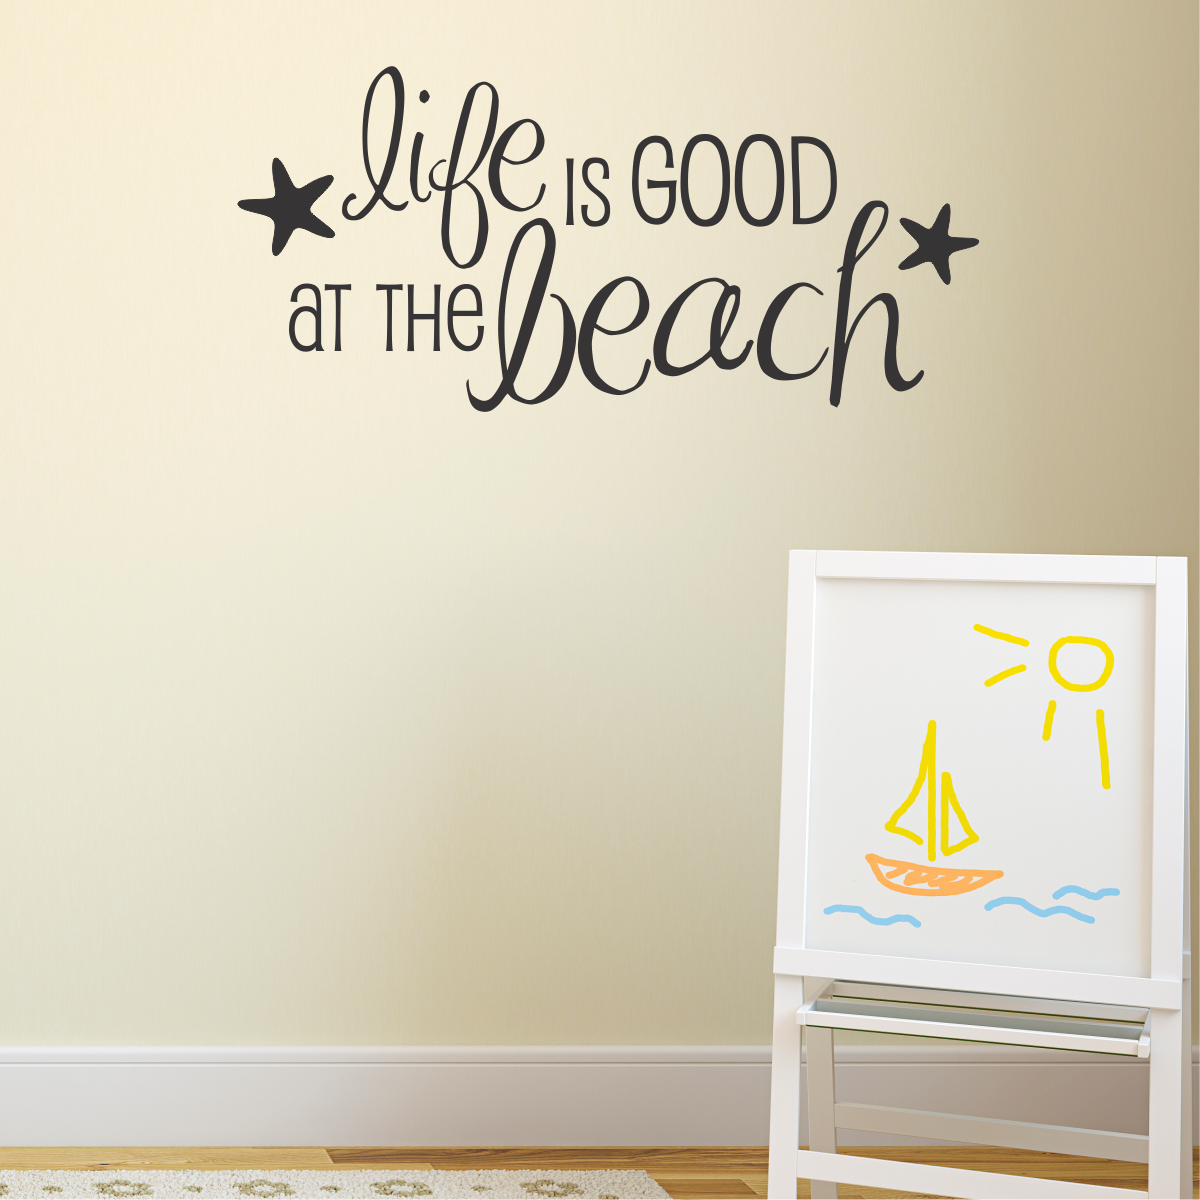 Life Is Good At The Beach Wall Quotes Decal WallQuotescom - Wall decals beach quotes